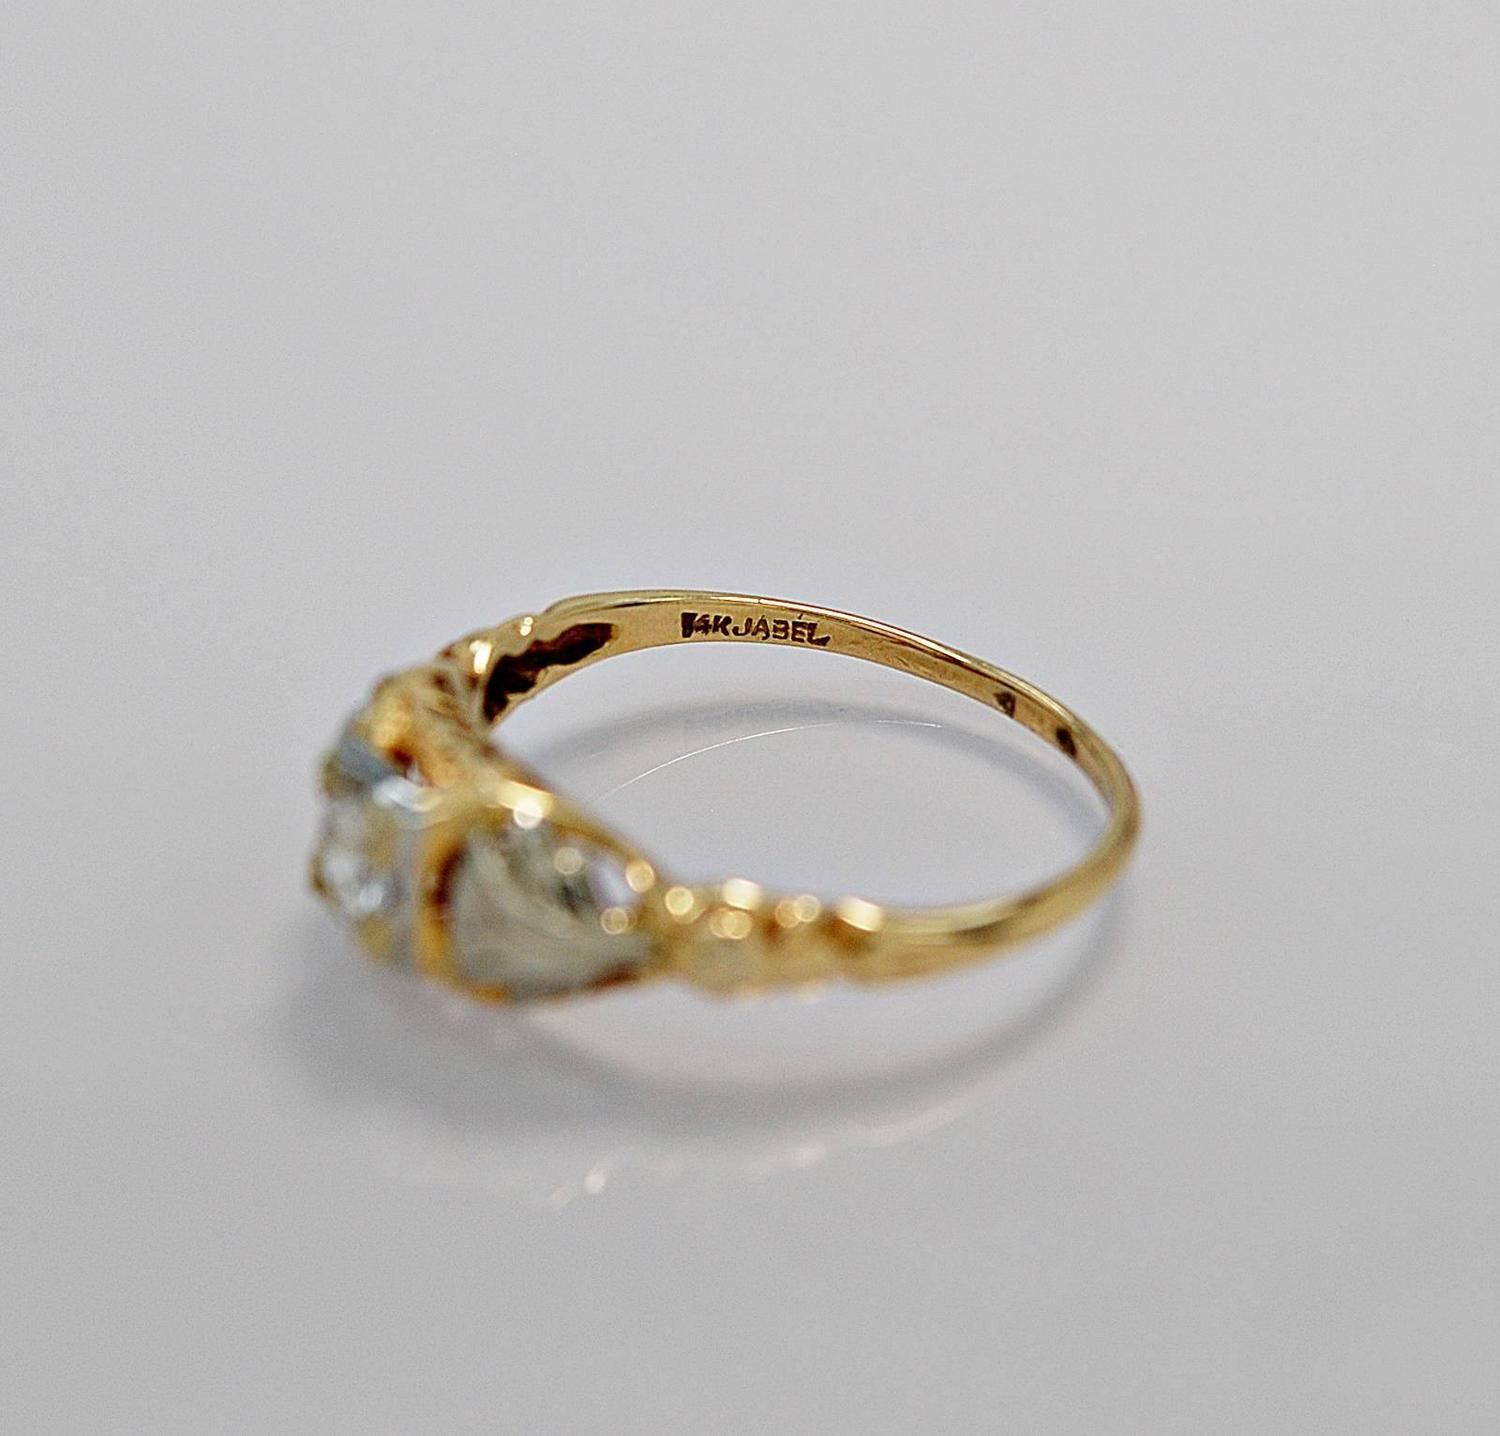 jaybel jewelry jabel antique two color gold engagement ring for 1986